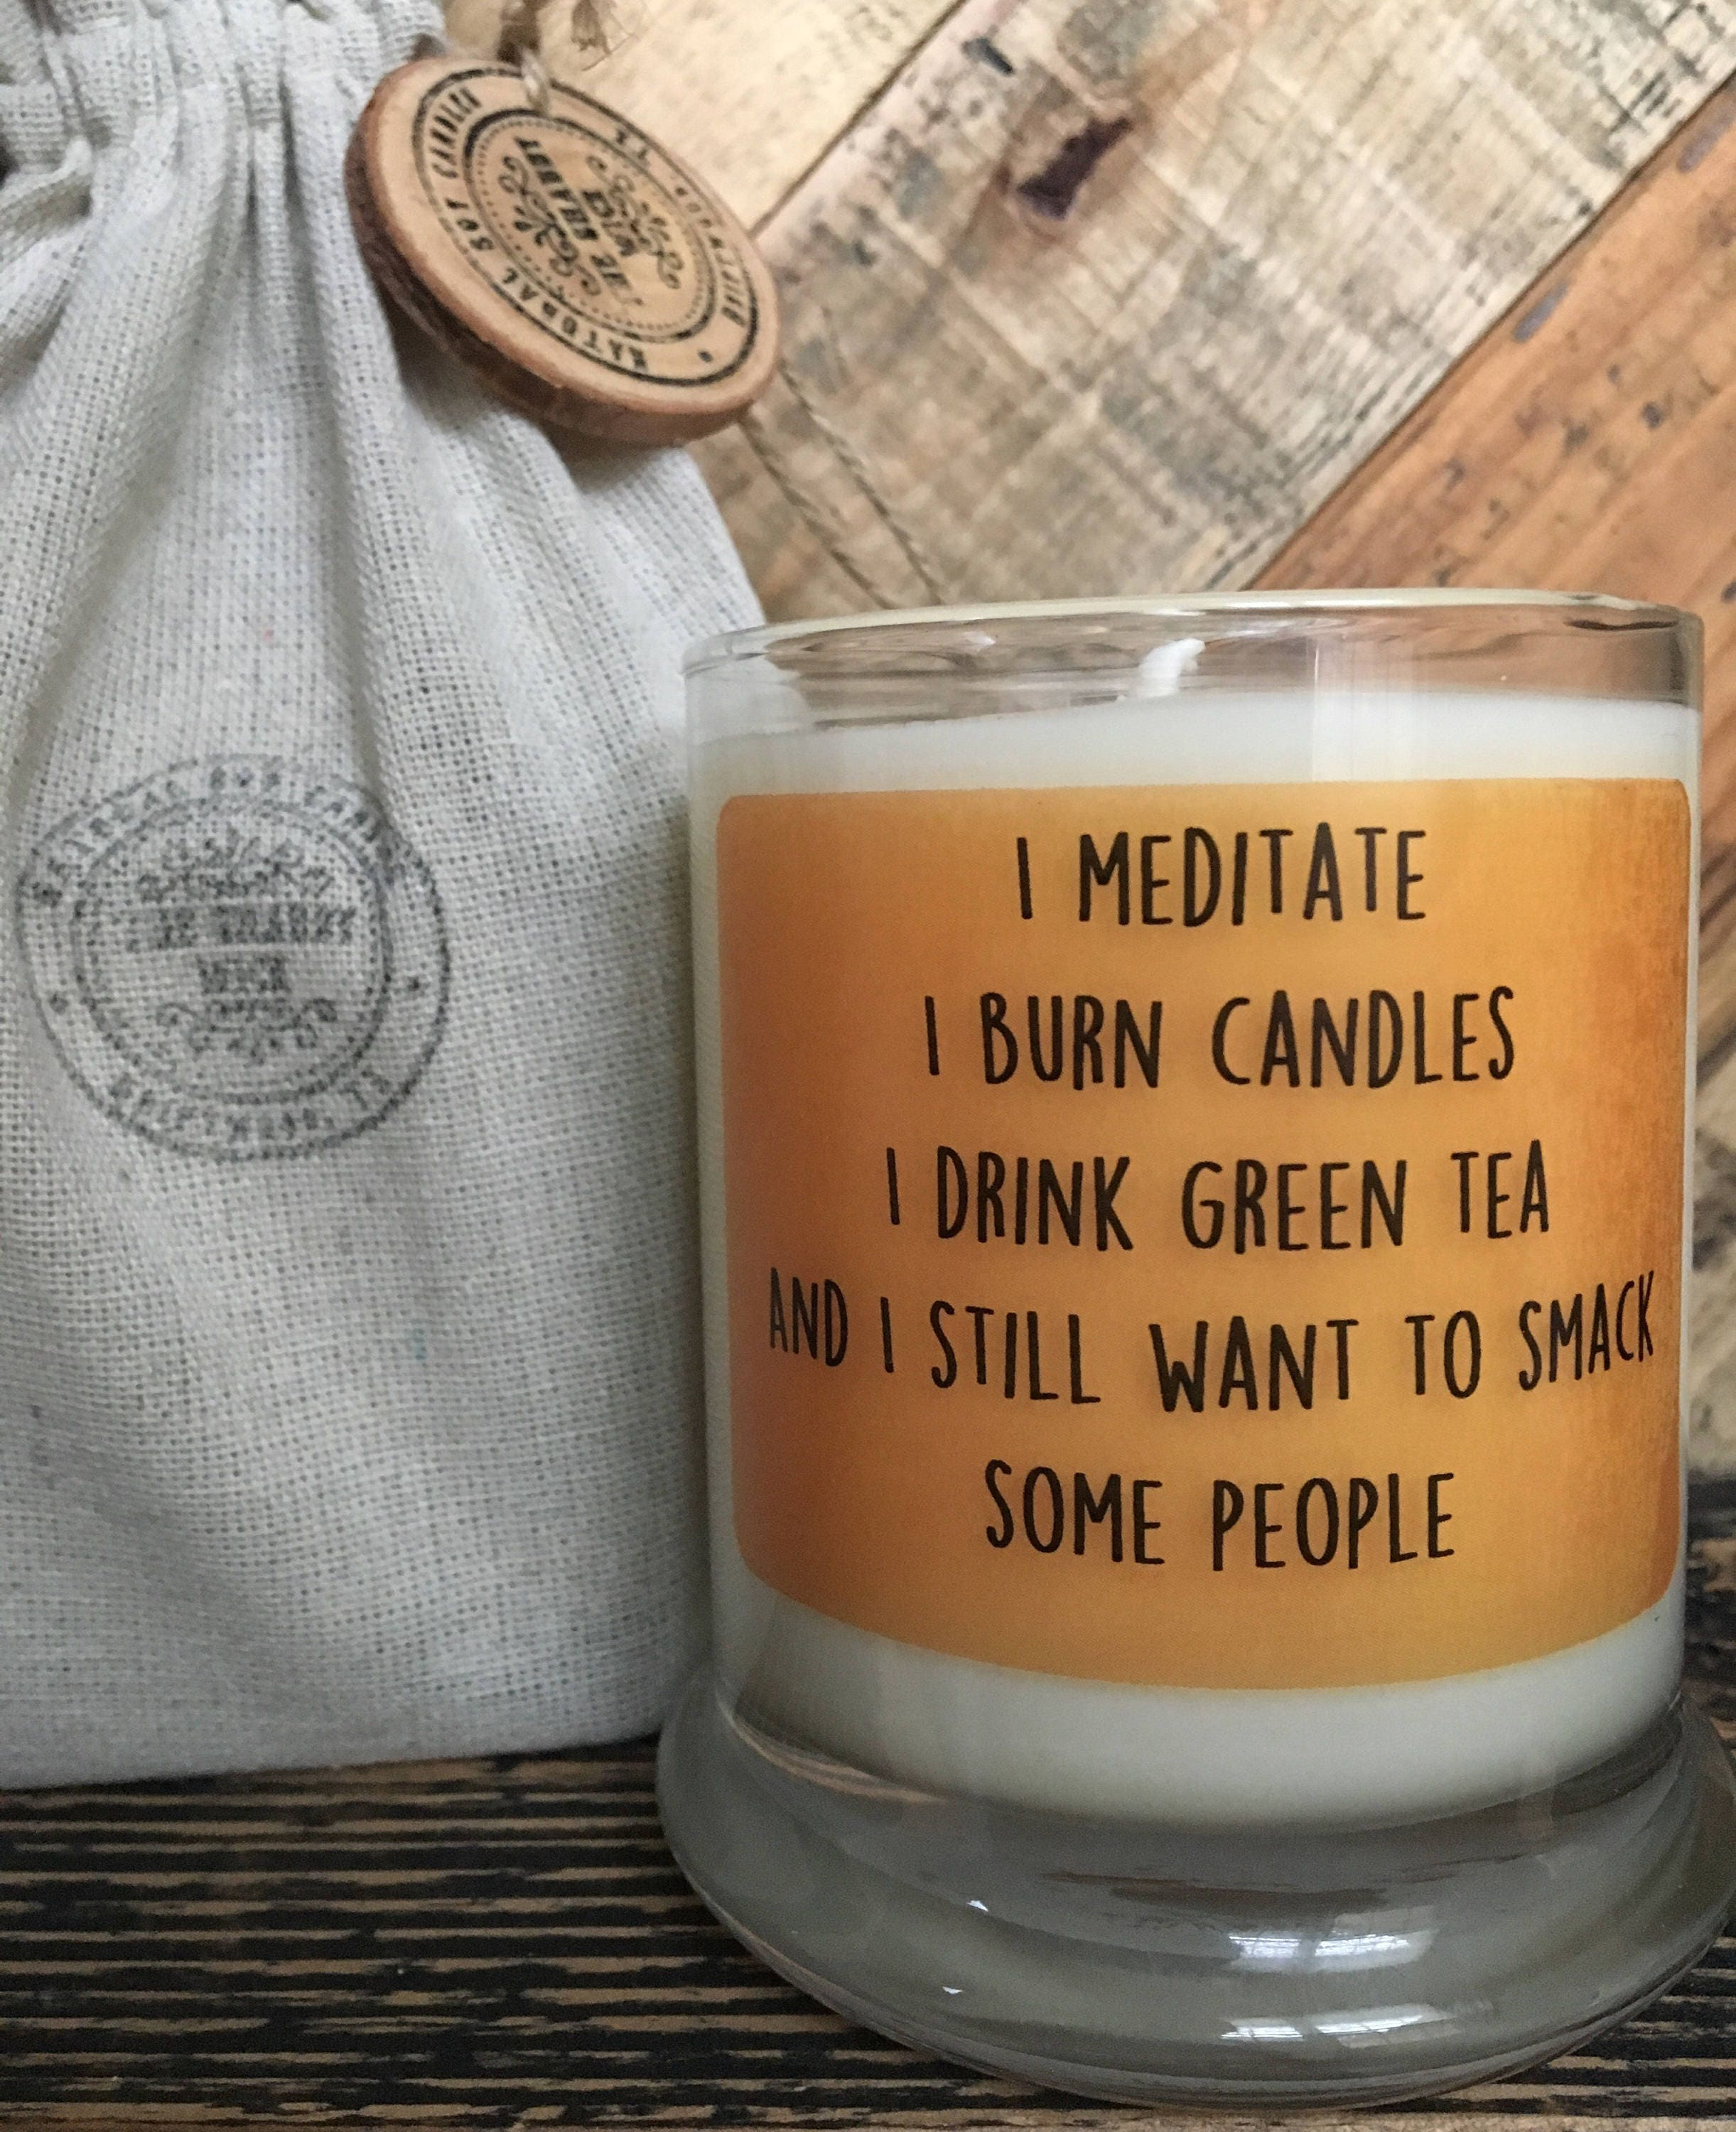 Humor Inspirational Quotes For Jar: Meditate Gift Funny Quotes Humorous Gifts Inspirational